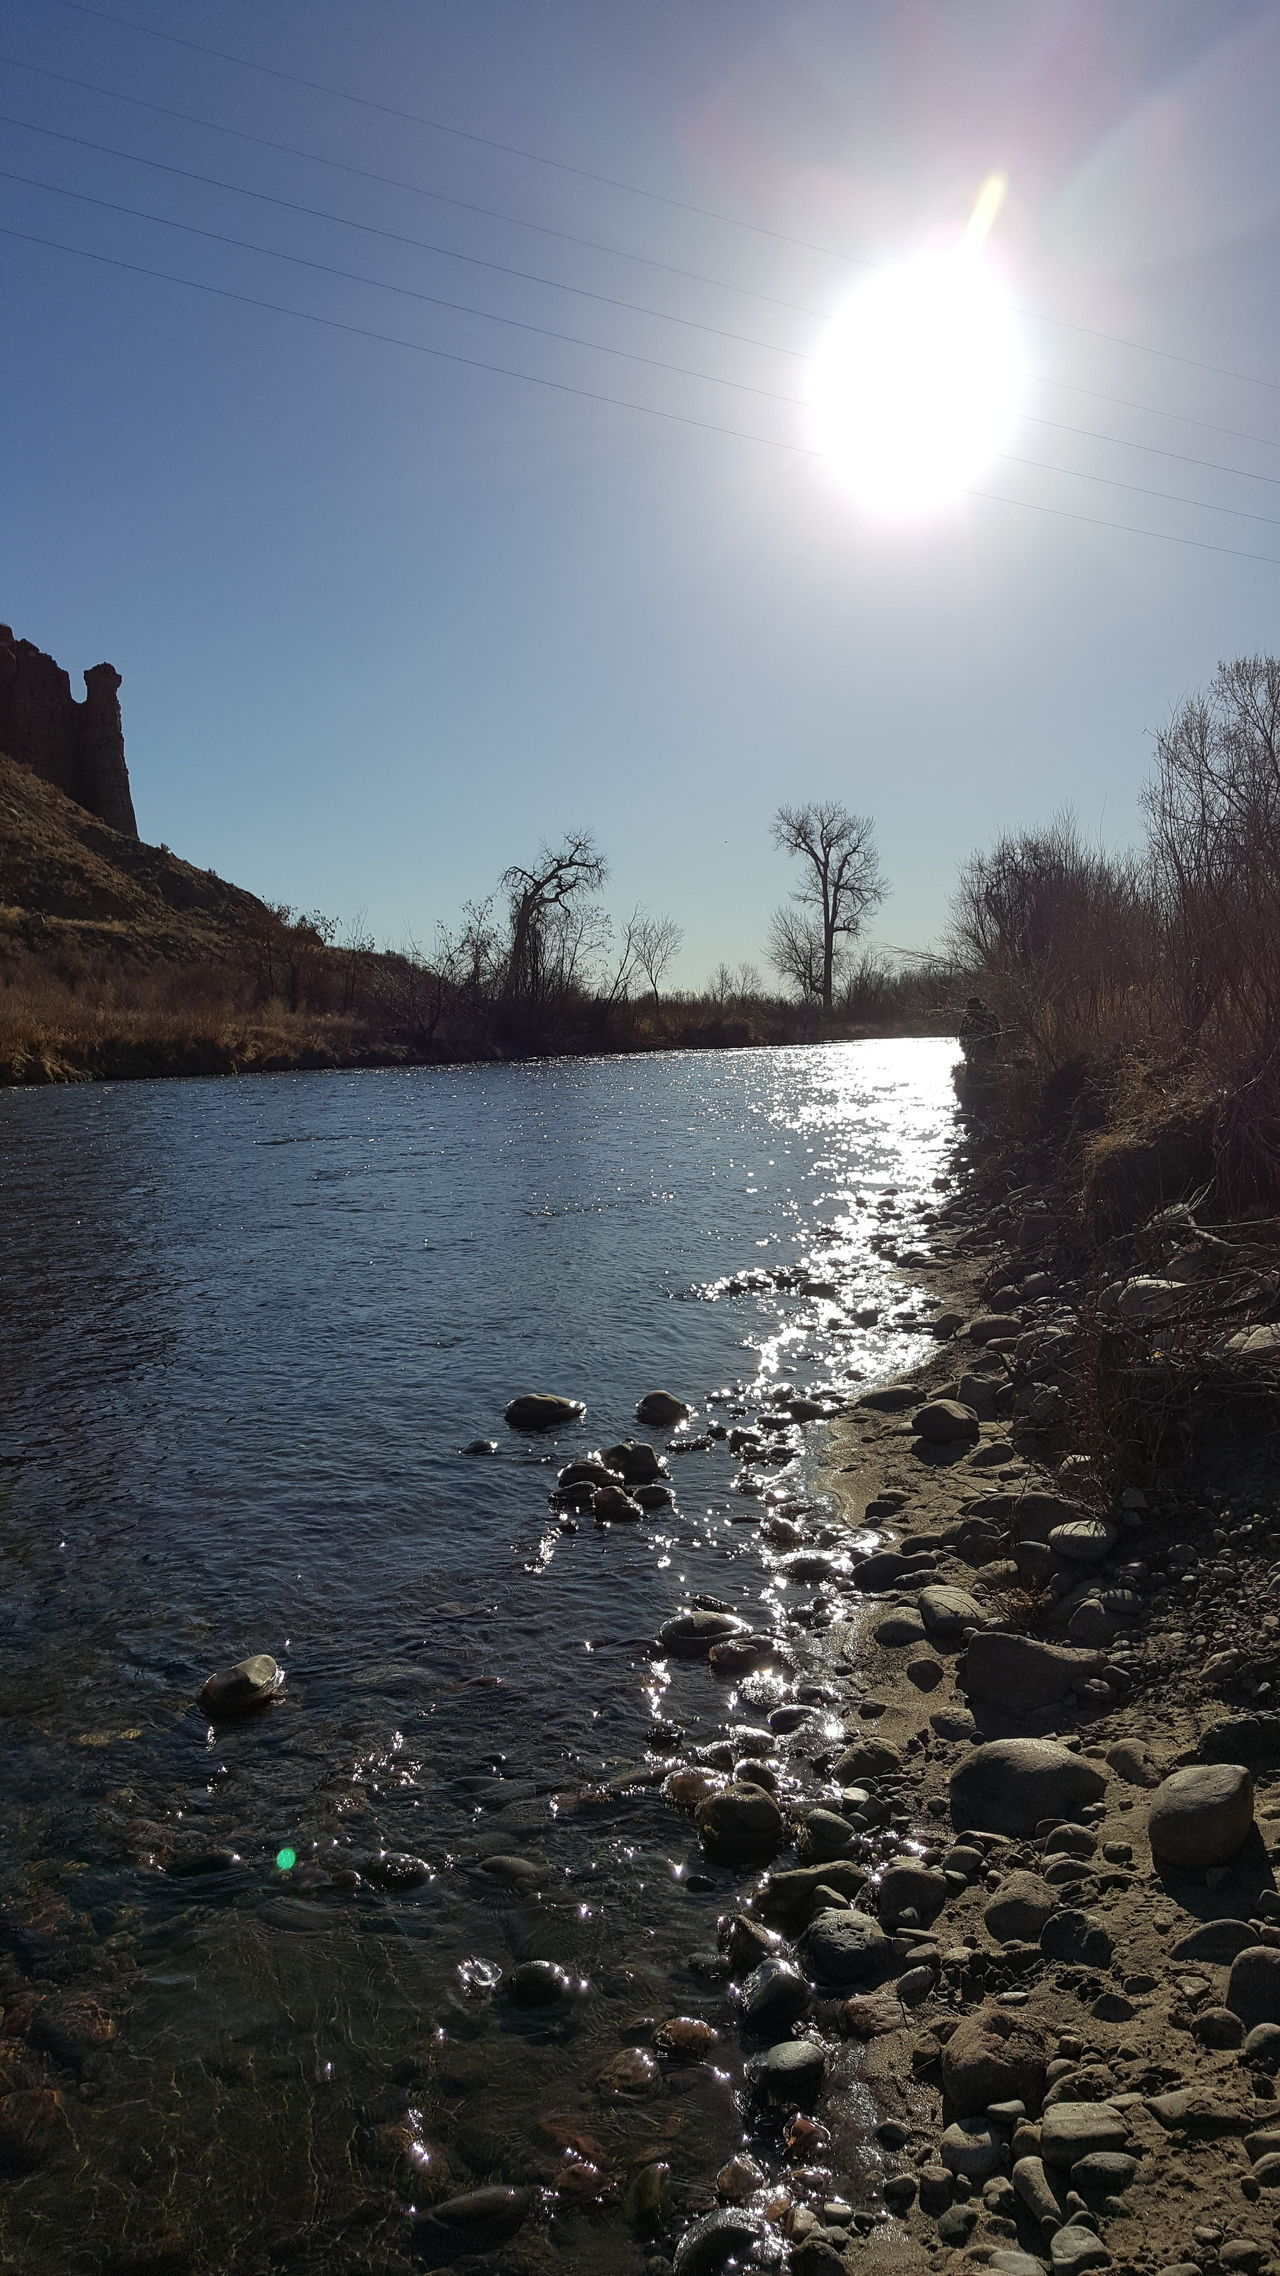 Sky No People Tranquil Scene Water Sea Outdoors Beauty In Nature Nature Scenics Tree Bird Stream Refraction Day River View Riverside Clearwater In Colorado Arkansas River Ice Around Stick River Rocks River Day Illuminated Blue Tree